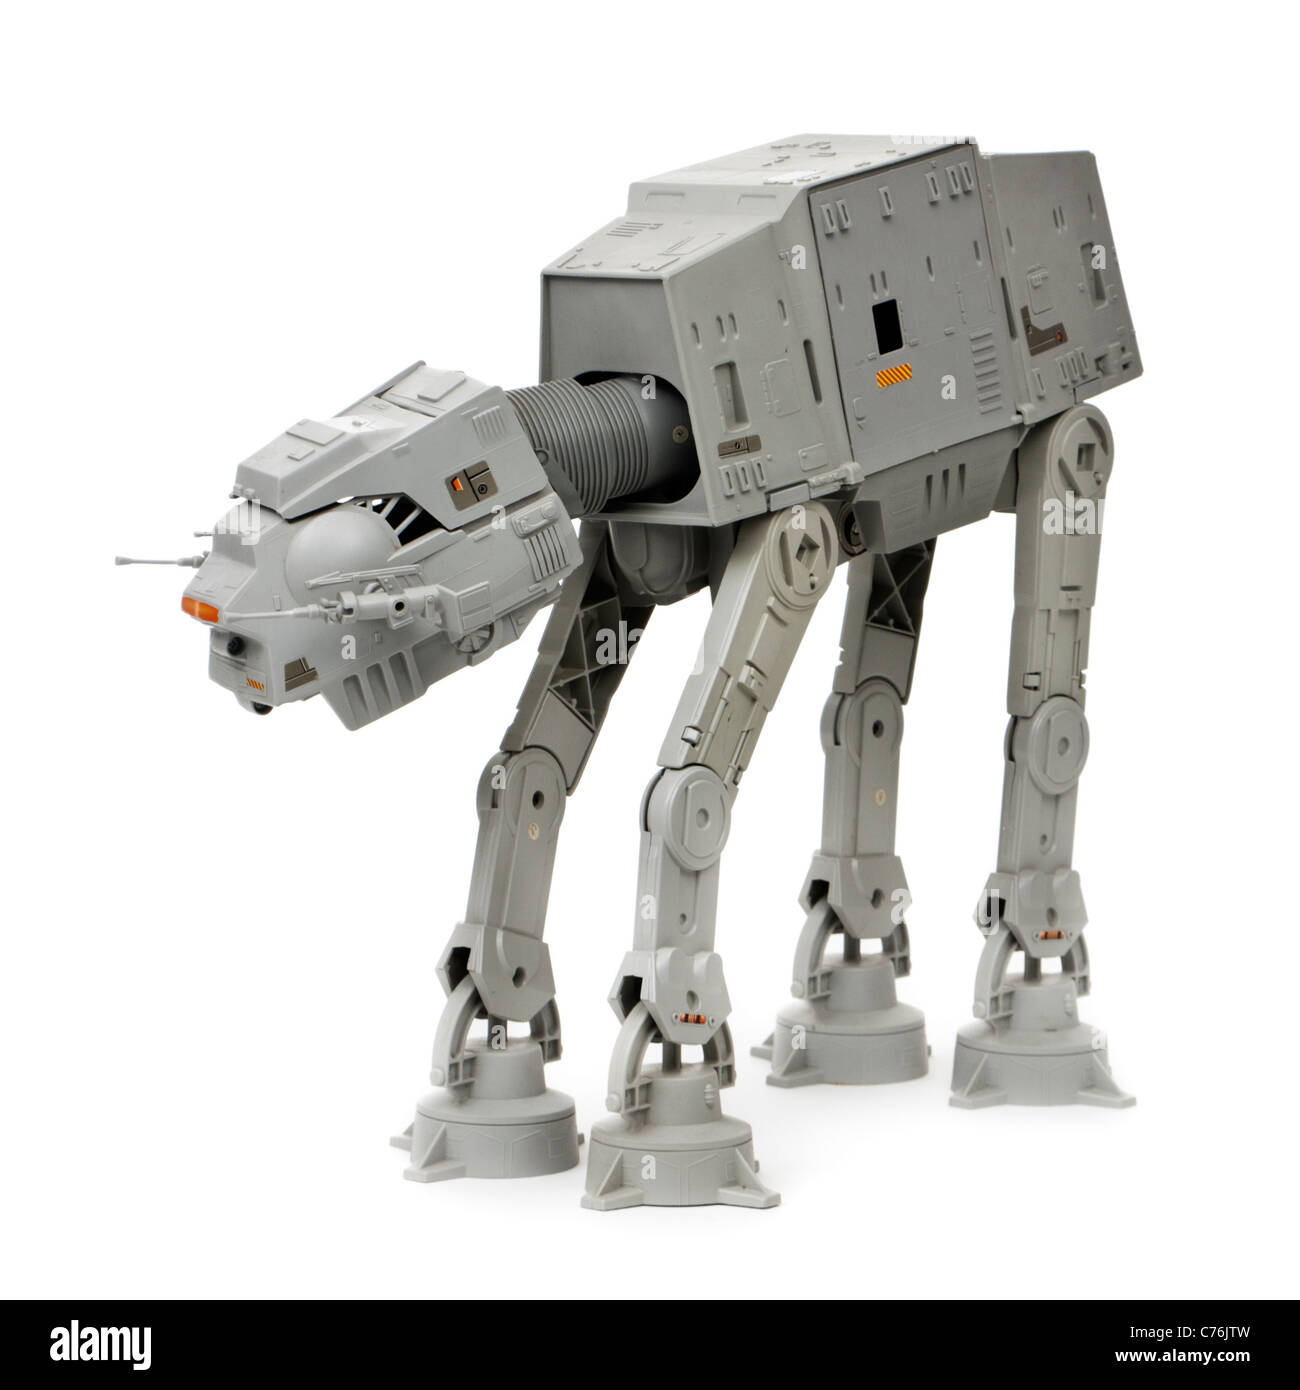 Star Wars AT-AT walker (All Terrain Armored Transport) by Kenner (1983) - Stock Image